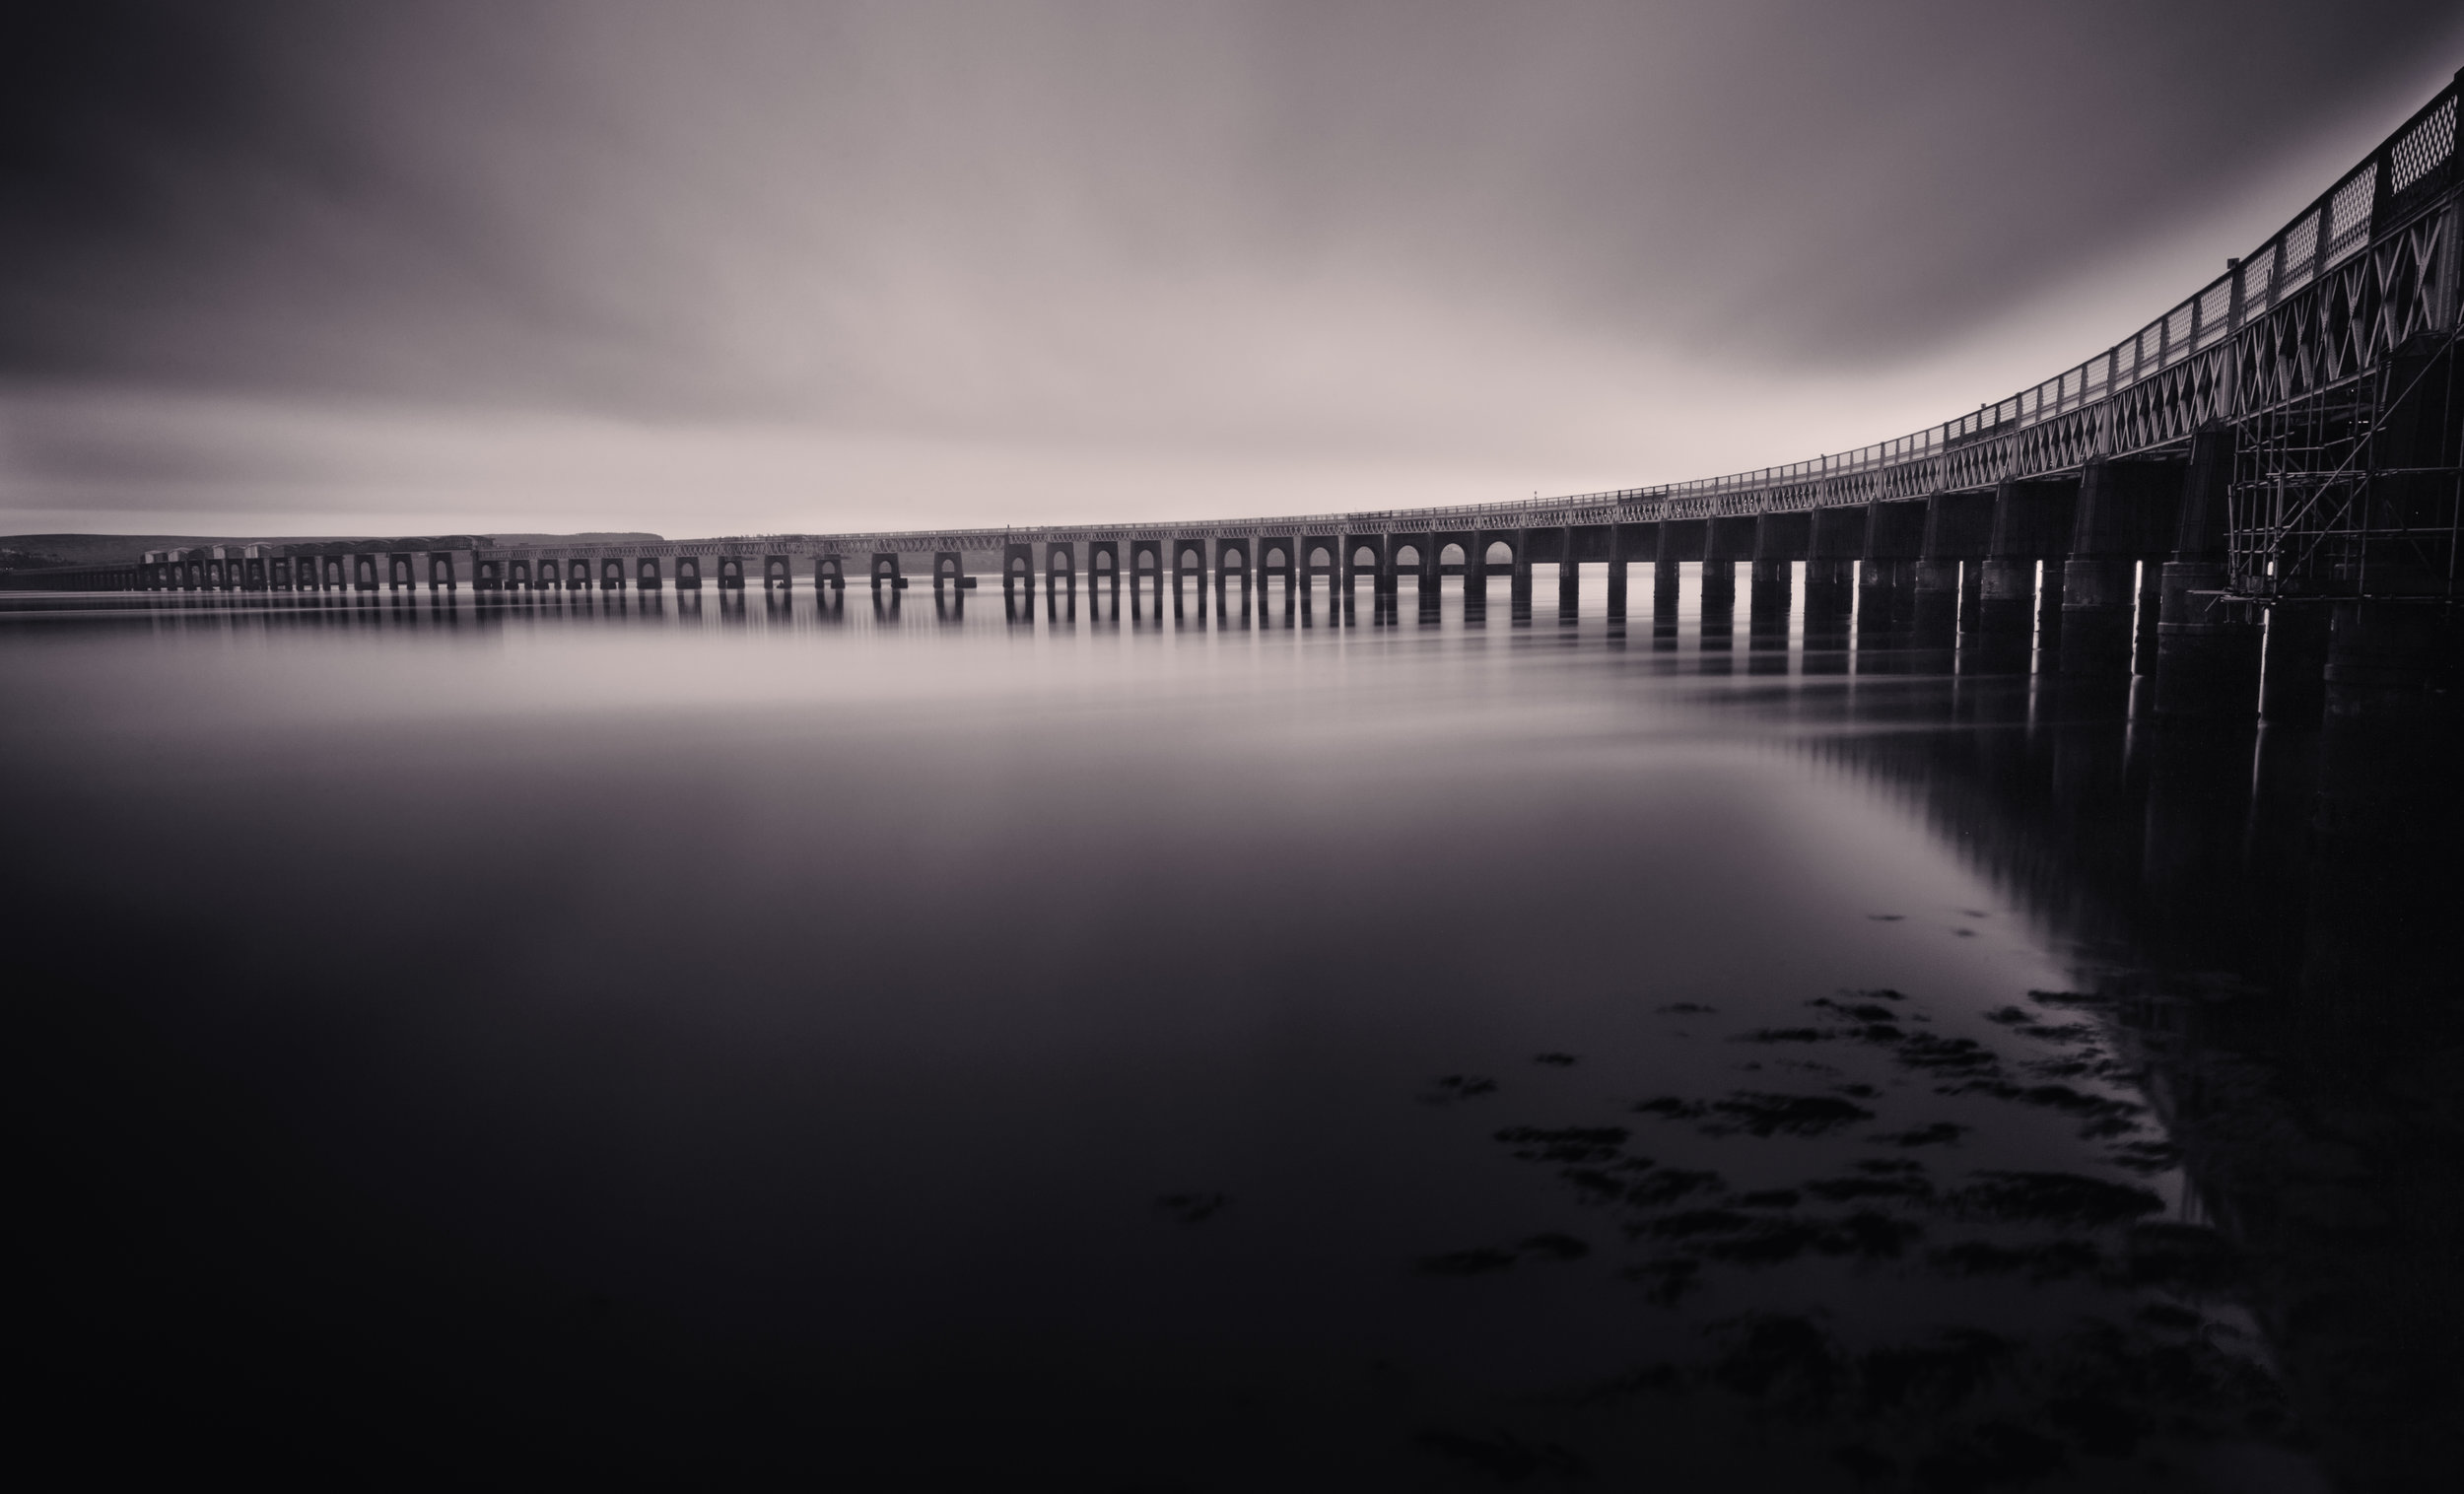 The Tay Bridge by Andy Clark